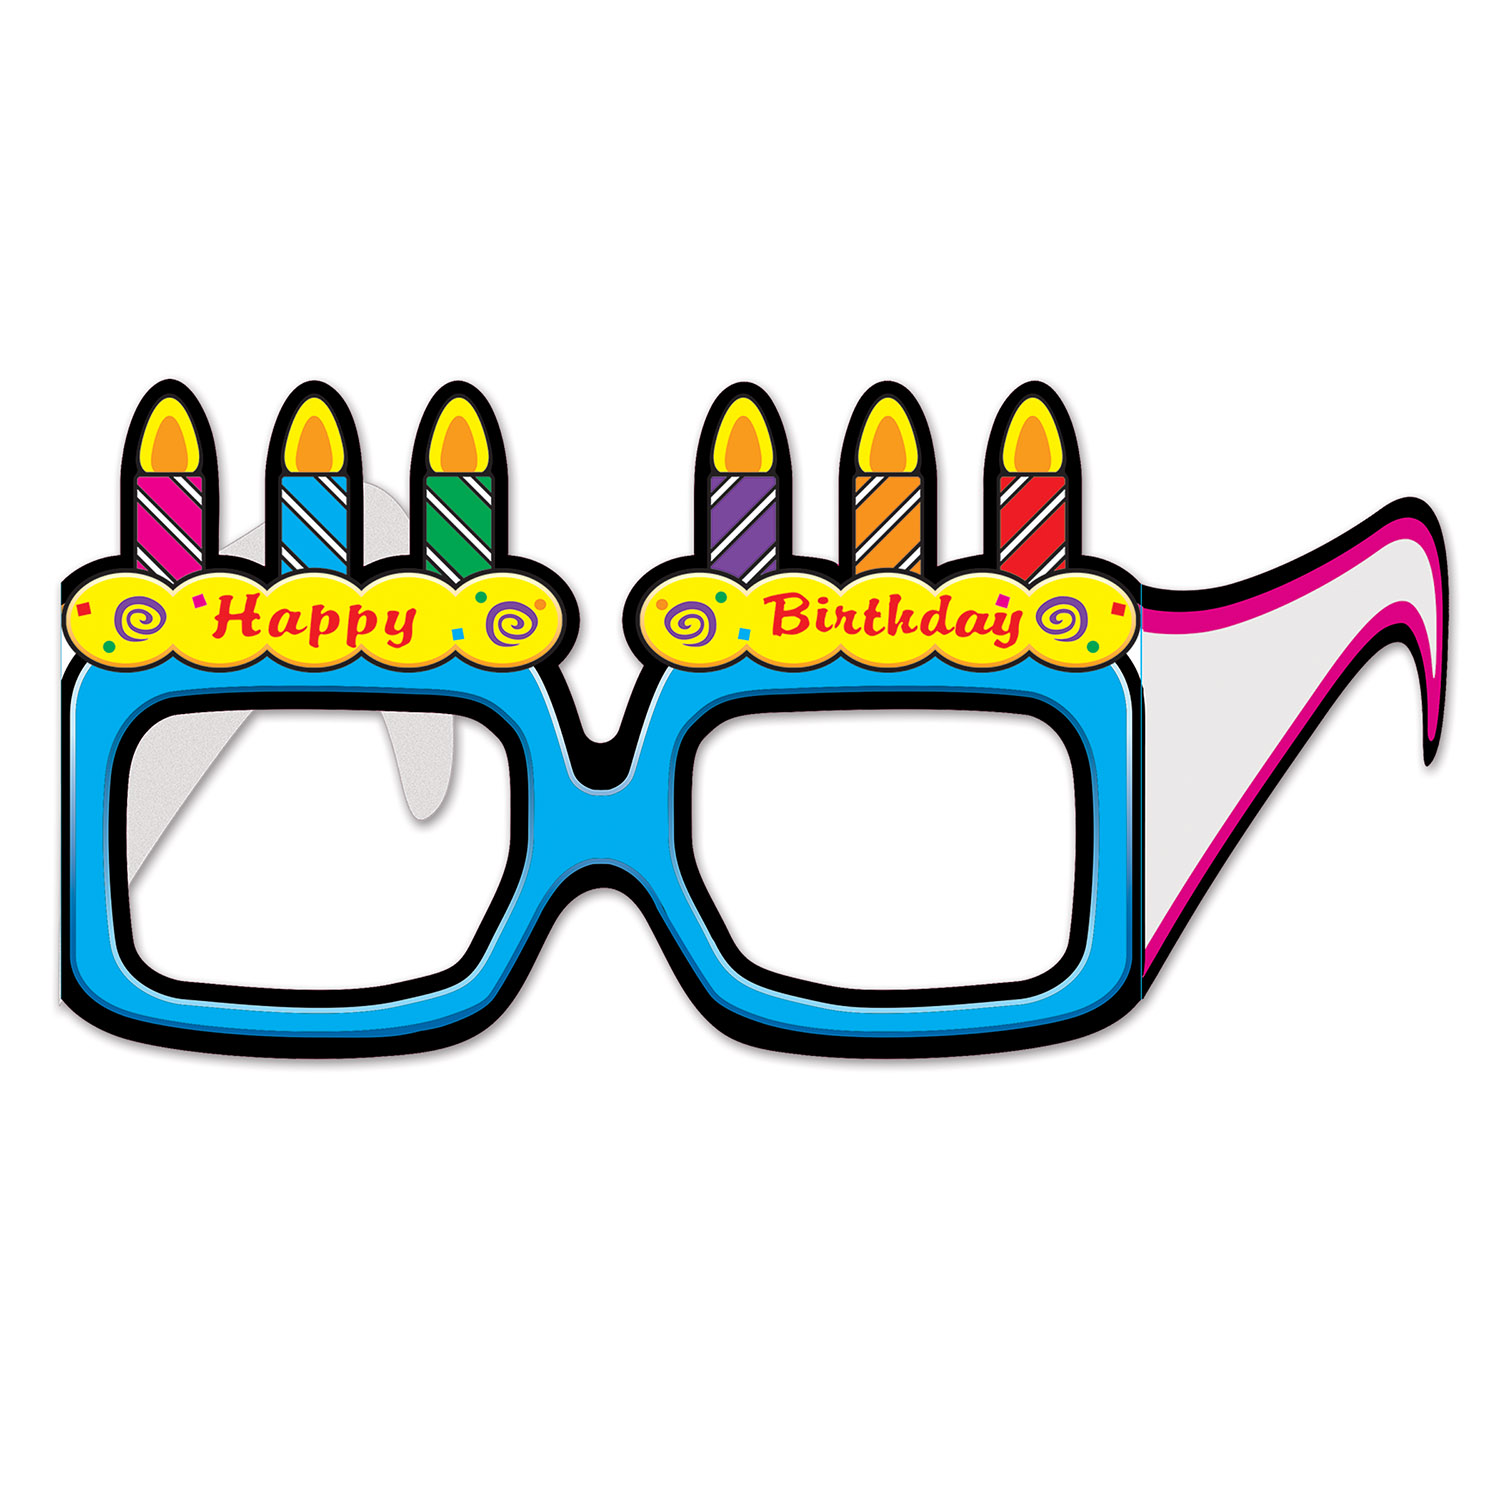 Birthday Cake Eyeglasses (Pack of 144) happy birthday, birthday, cake, celebration, candles